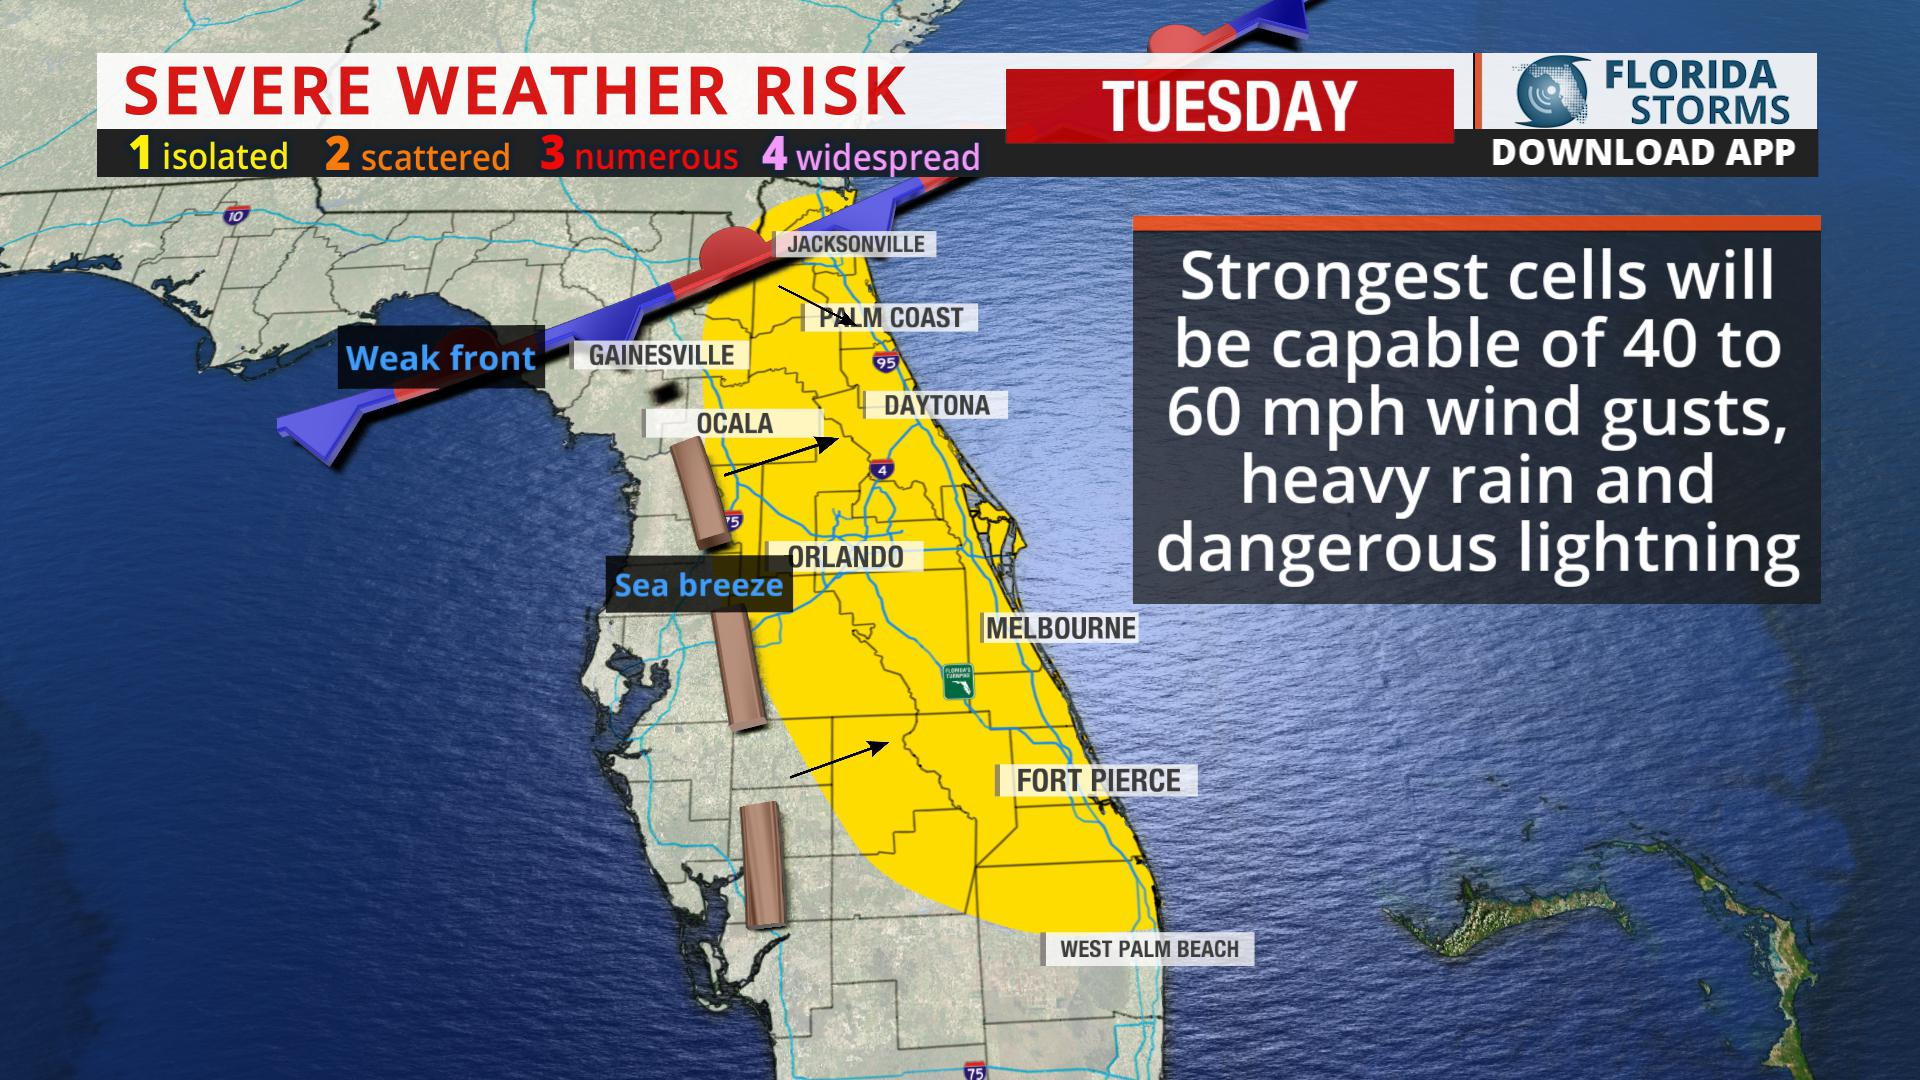 A Few Severe Storms Possible Today In East Florida - Florida Storms - Seabreeze Florida Map